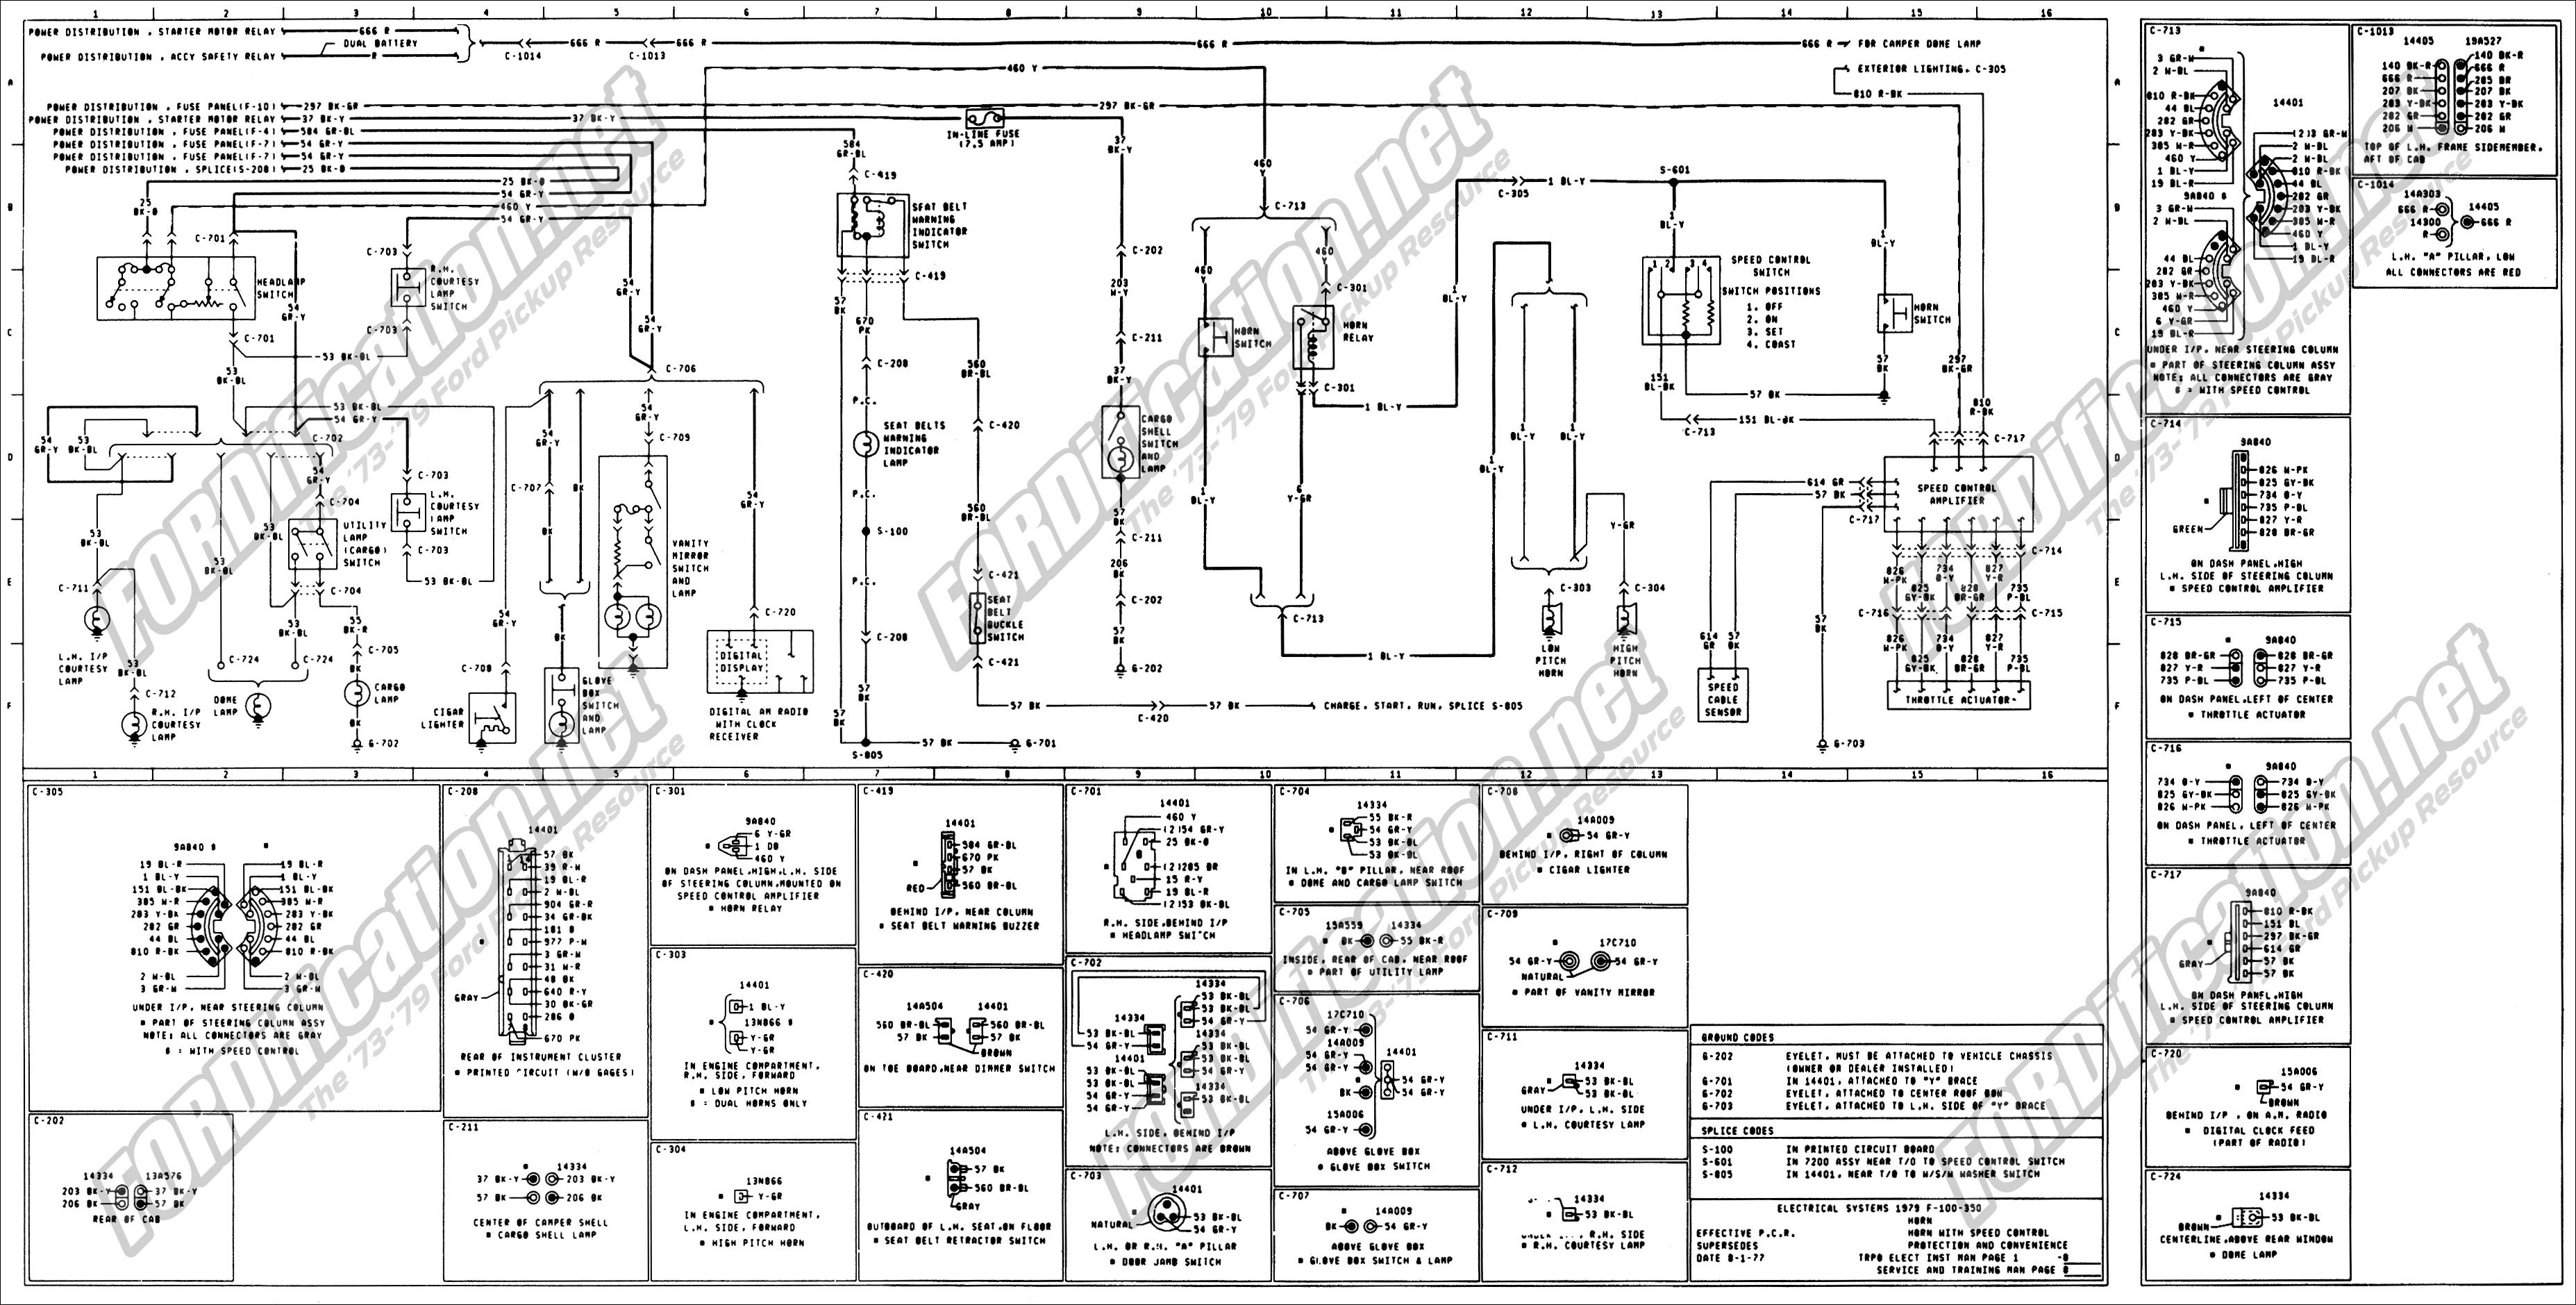 1976 Chevy Truck Wiring Diagram 1973 1979 ford Truck Wiring Diagrams & Schematics fordification Of 1976 Chevy Truck Wiring Diagram